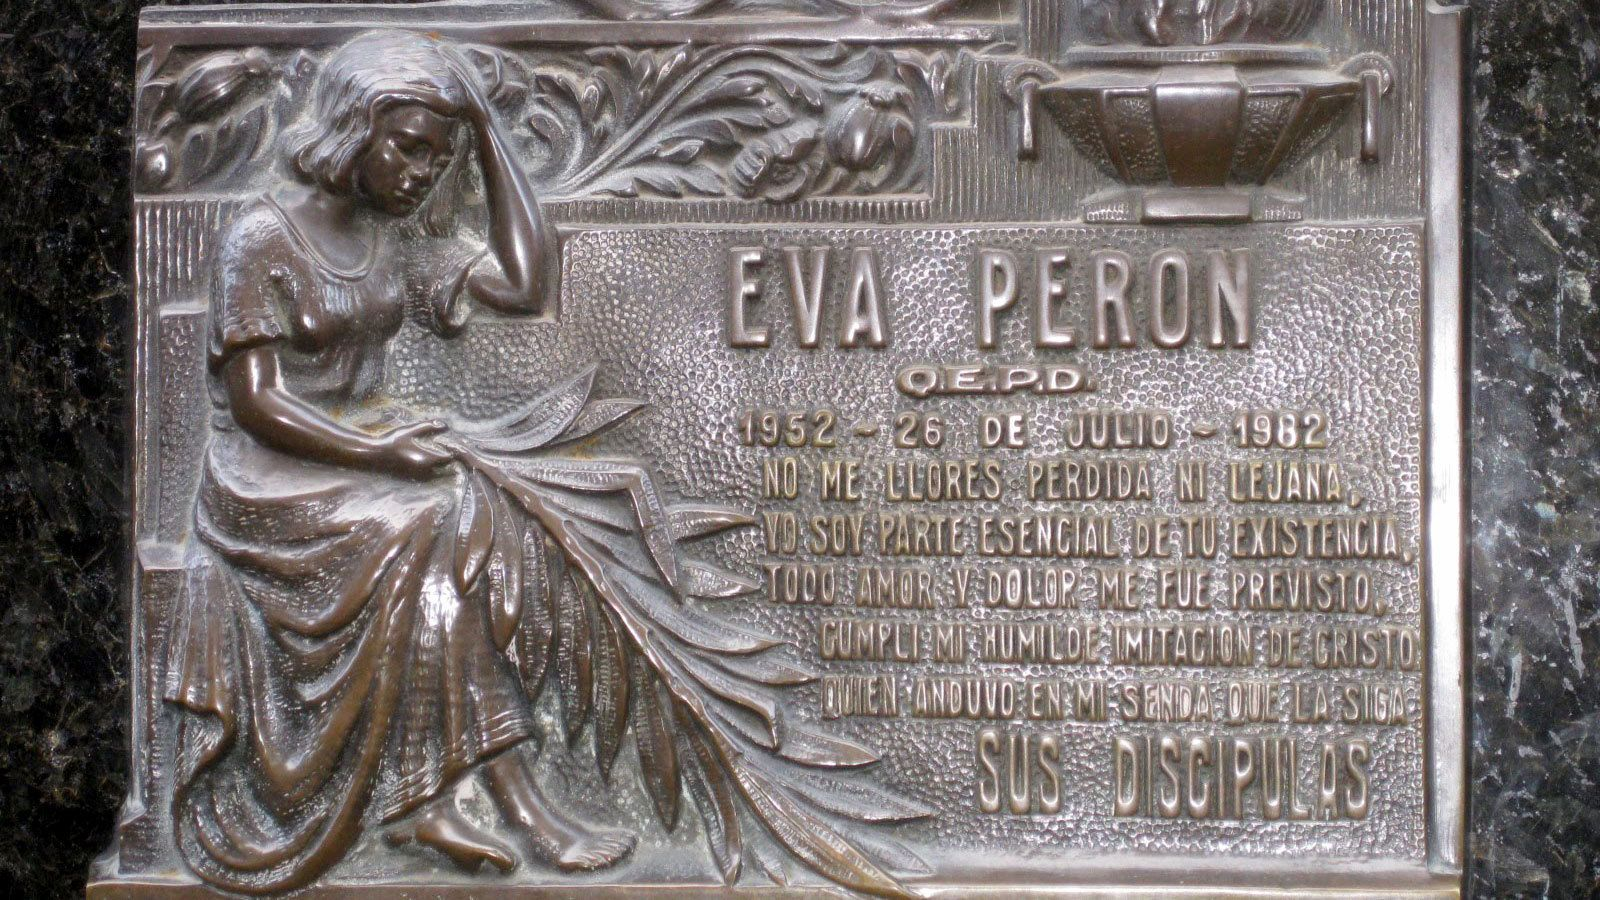 a plaque of Evita Peron on the wall in Argentina